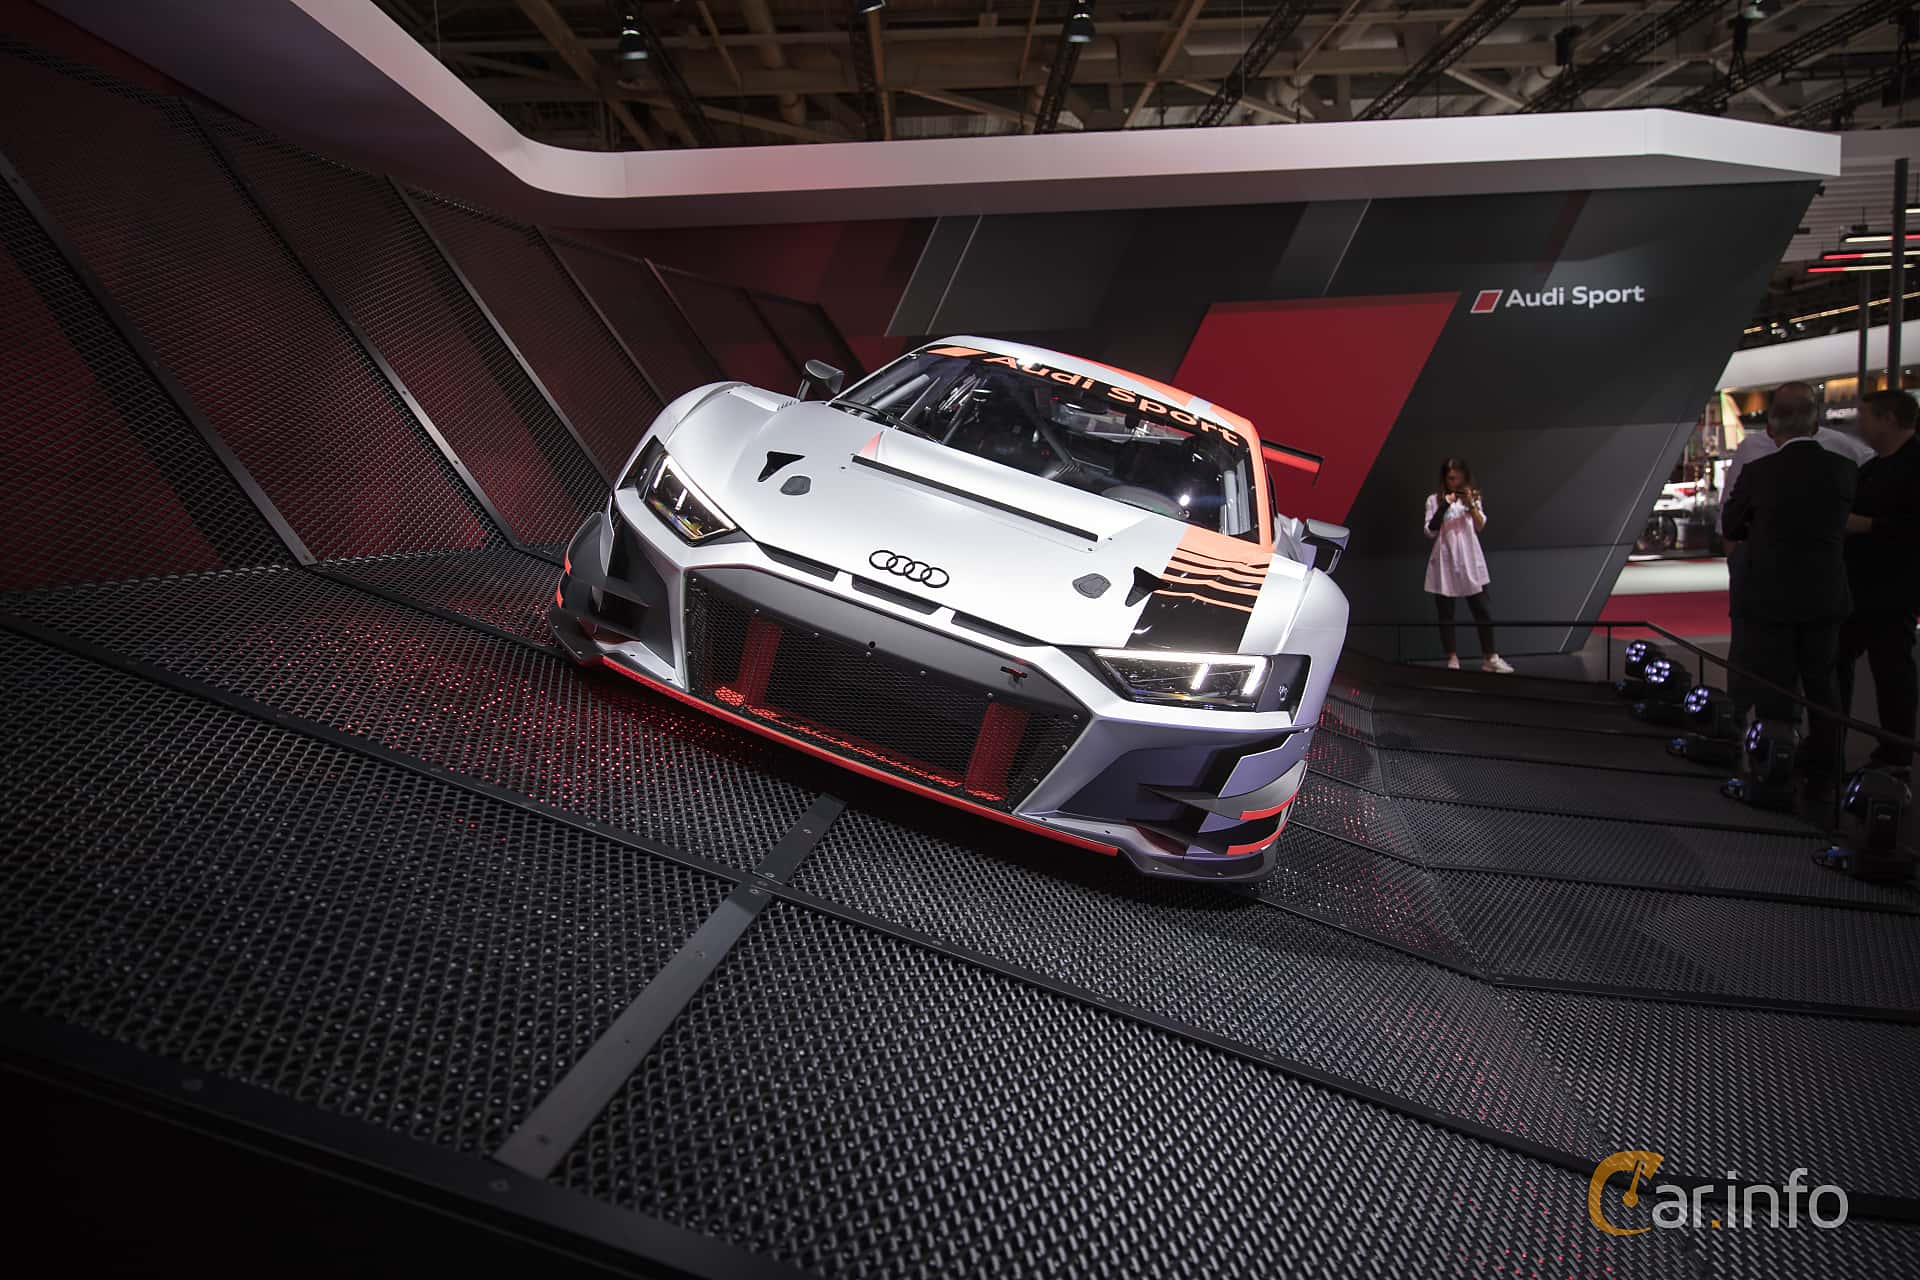 Audi R8 LMS 5.2 V10 FSI quattro Sequential, 585hp, 2018 at Paris Motor Show 2018